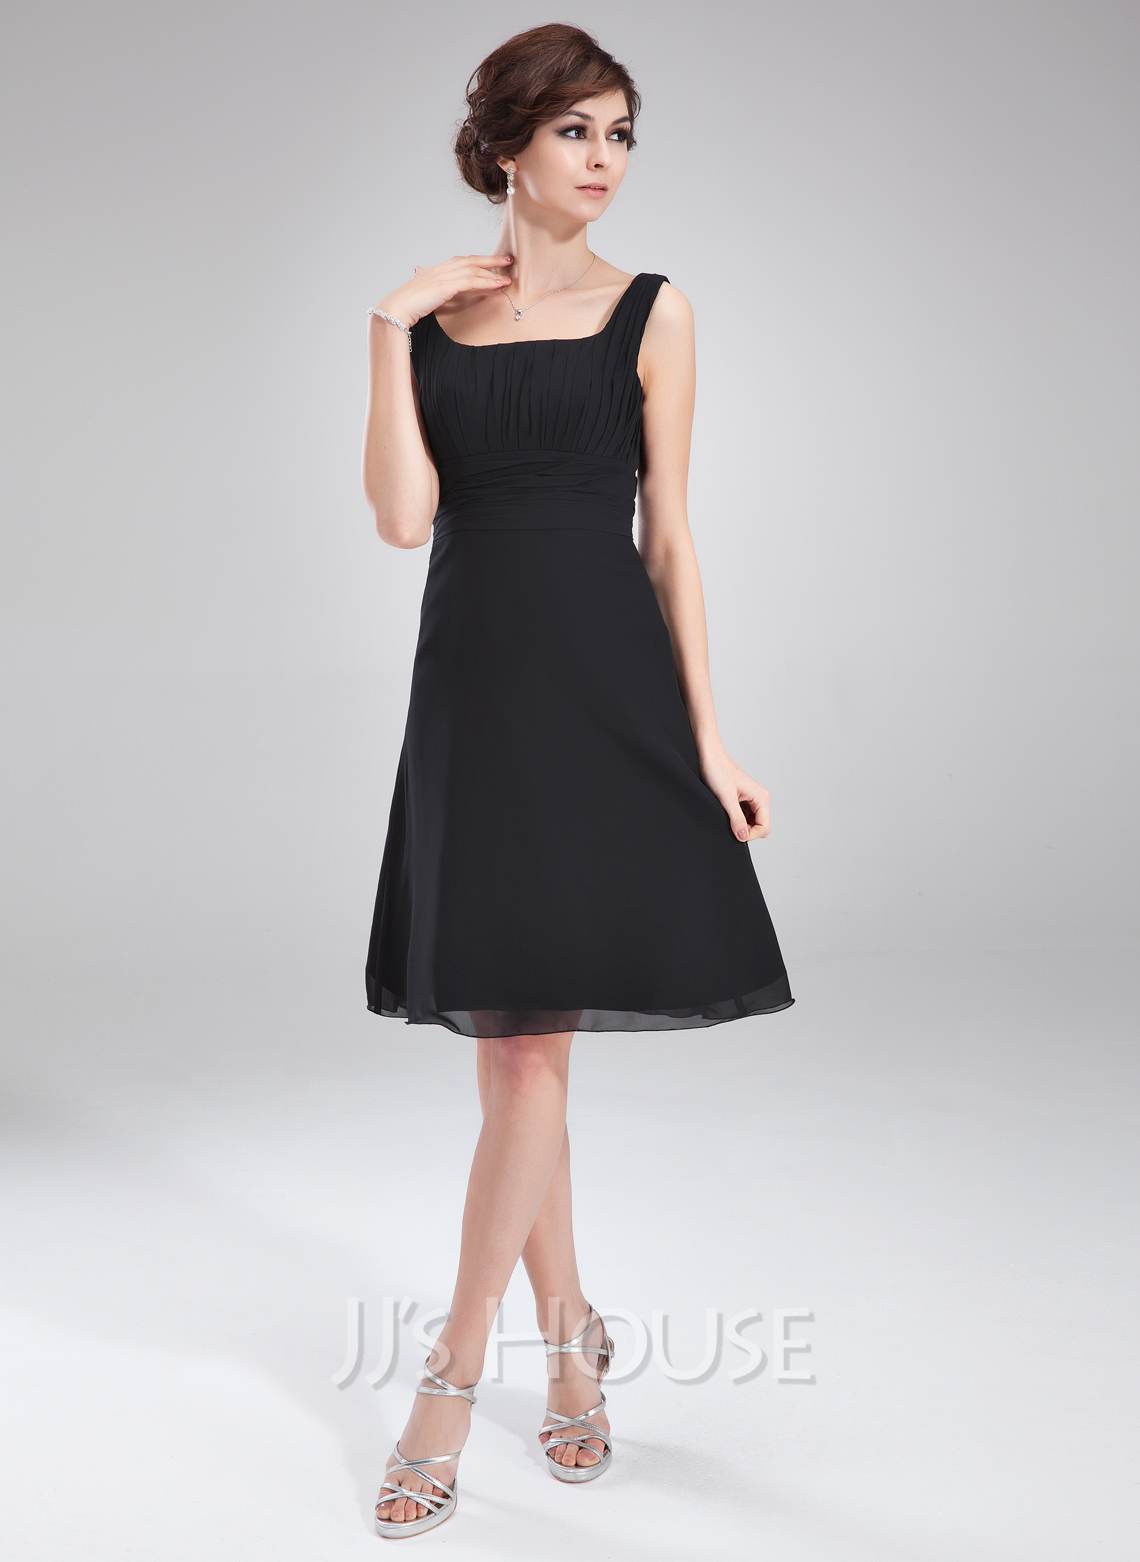 A-Line/Princess Square Neckline Knee-Length Chiffon Cocktail Dress With Ruffle Bow(s)